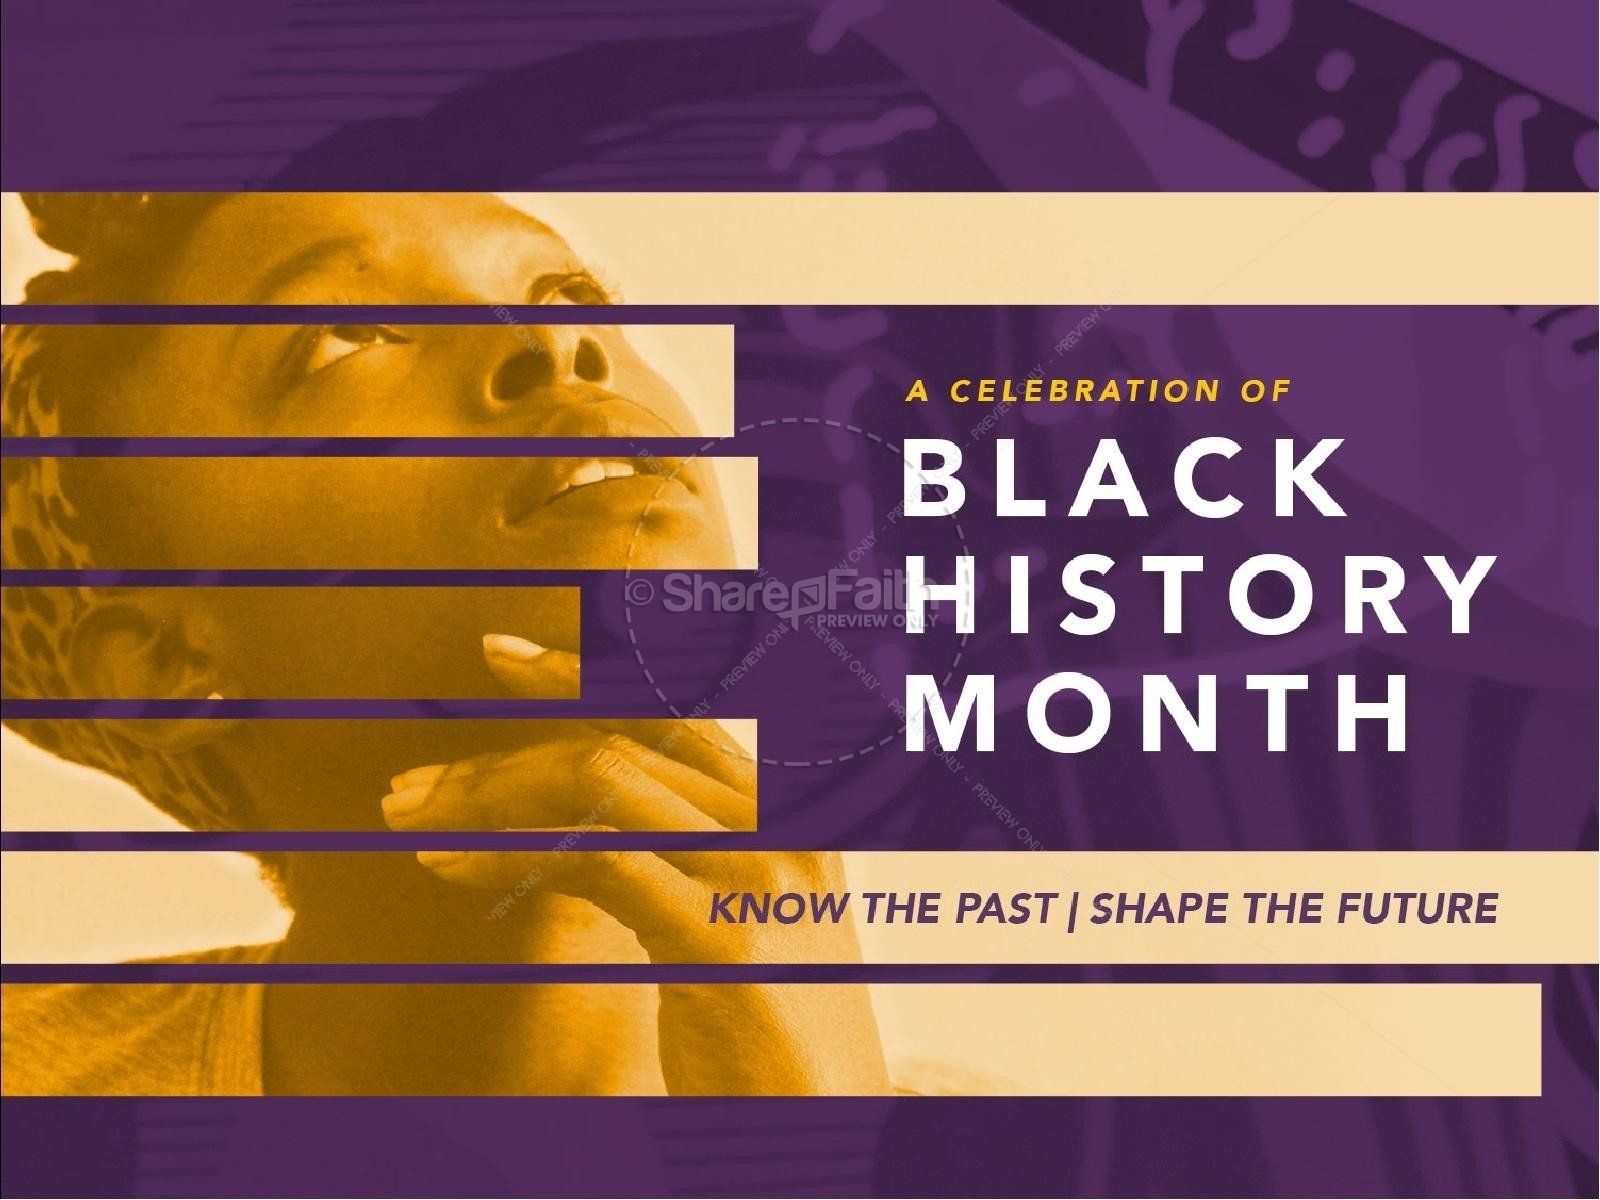 10 Fashionable Black History Month Ideas For Church black history month church countdown timer church countdown timers 1 2021